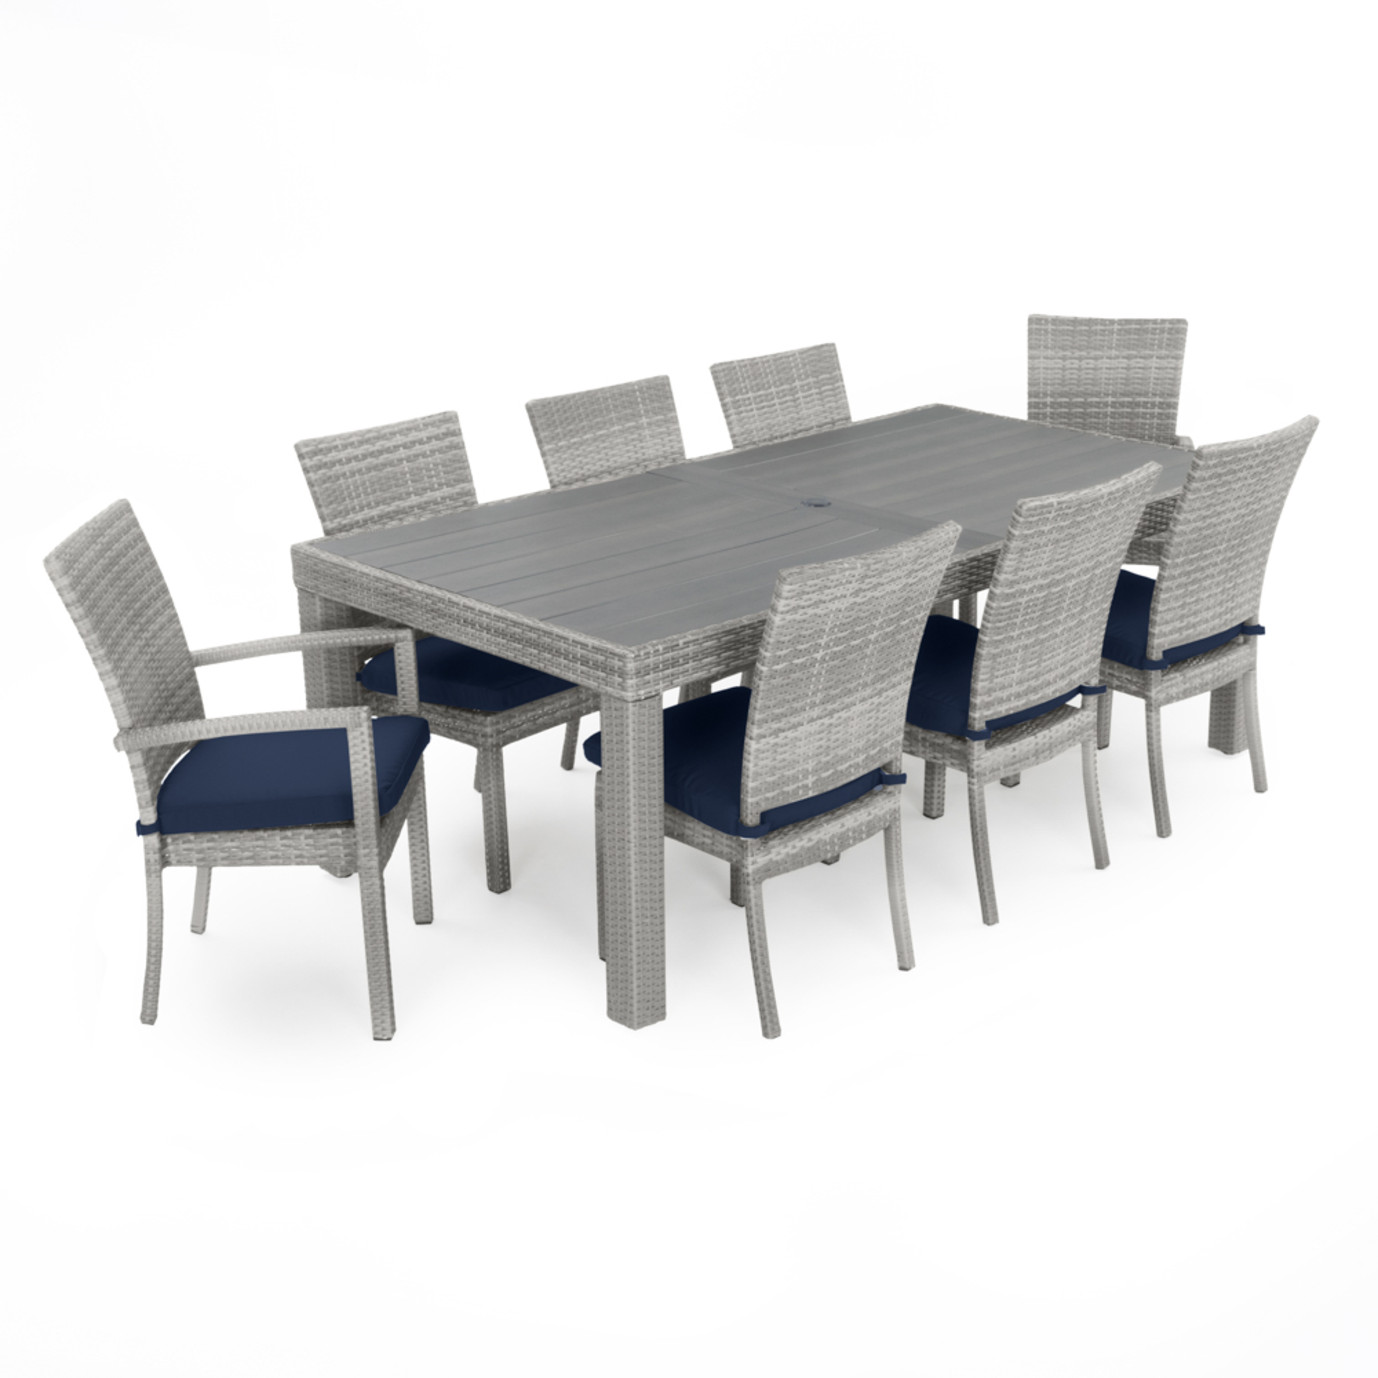 Blue Kitchen Table Set: Cannes Woven Dining Set - Navy Blue